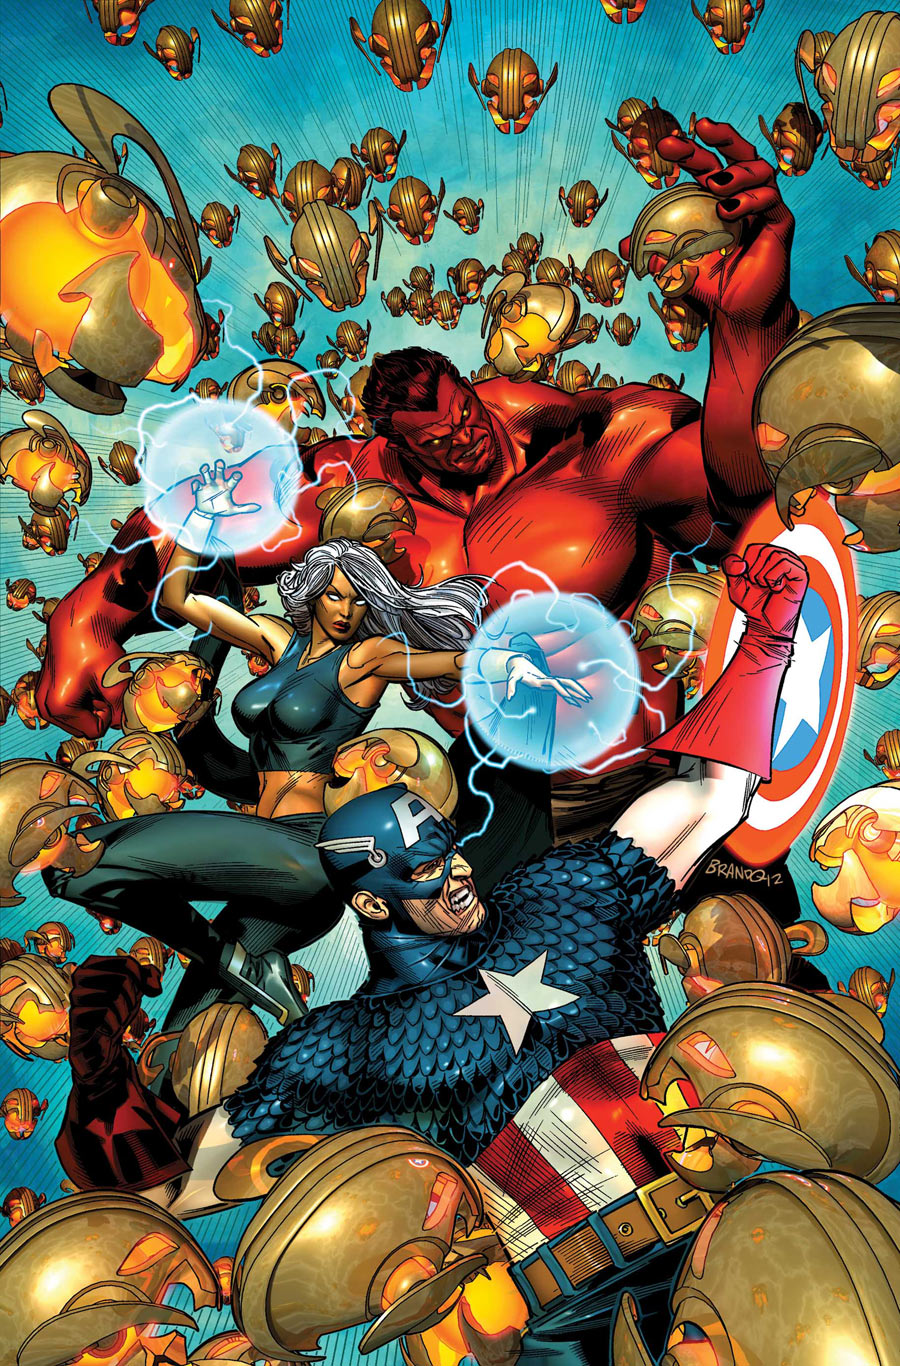 6 Of Pentacles As Advice: Marvel Comics Database